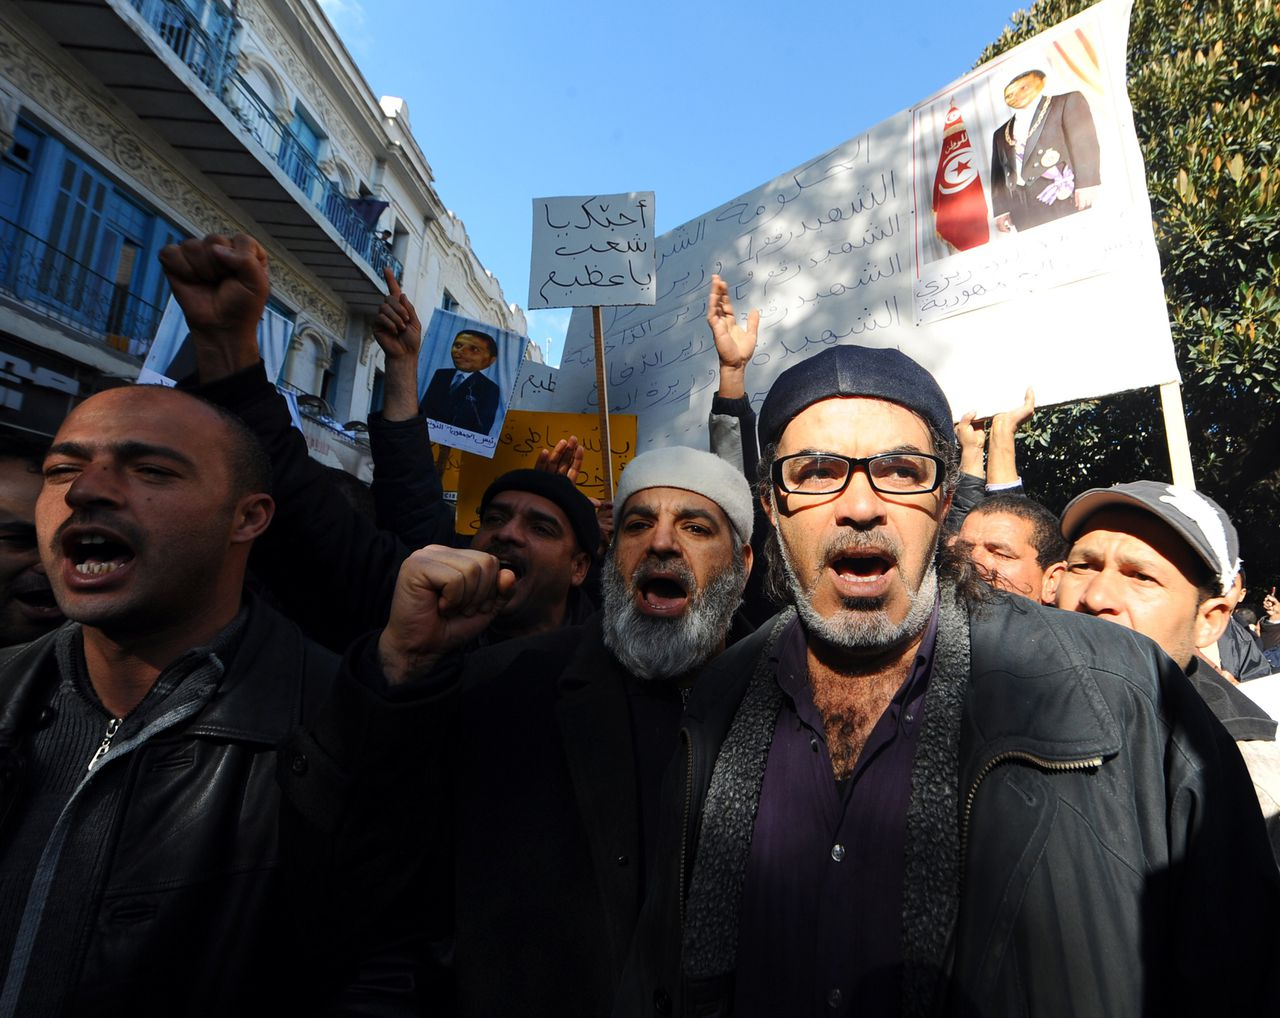 """Tunisian Muslims shout slogans after Friday prayers on January 21, 2011 in Tunis. Imams recited prayers for the """"martyrs of the revolution"""" in mosques across Tunisia on Friday a week after popular protests ended the authoritarian rule of veteran president Zine El Abidine Ben Ali. AFP PHOTO/FETHI BELAID"""